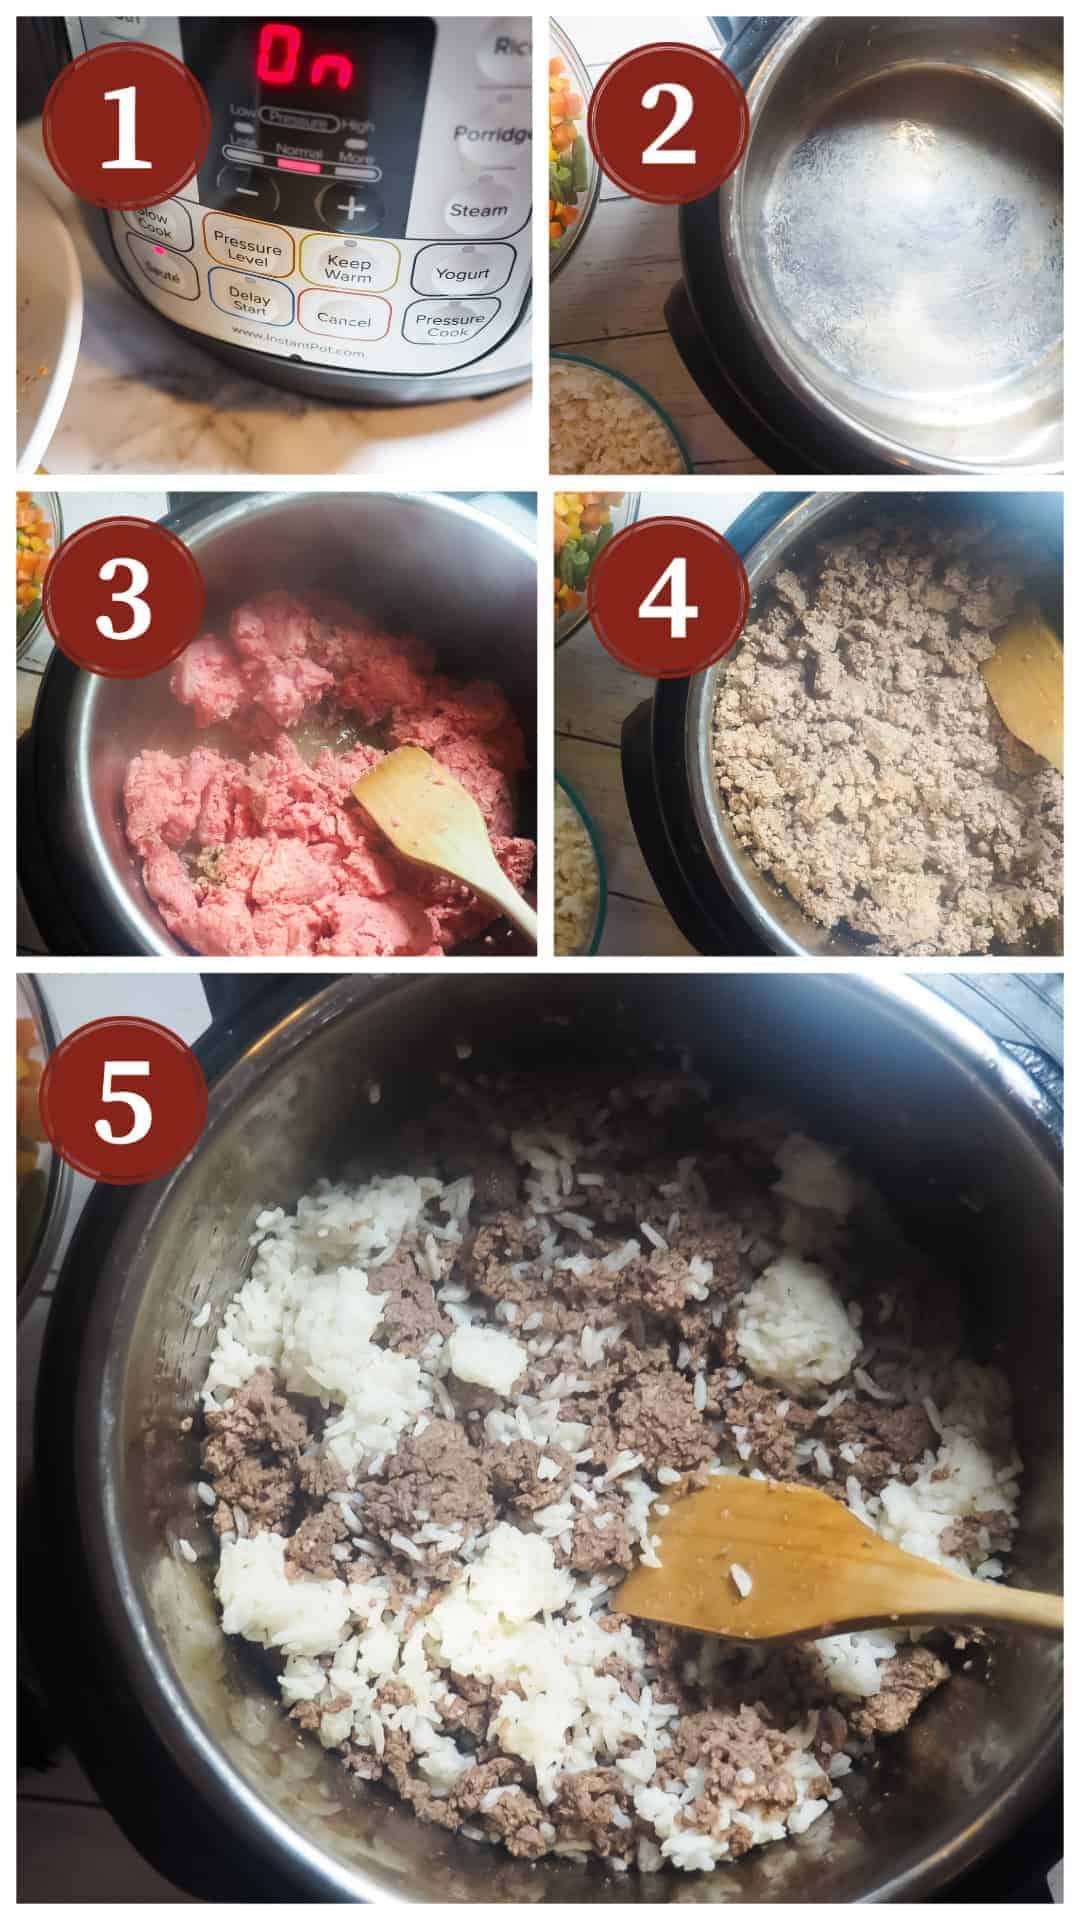 A process collage of images for making instant pot dog food, steps 1 - 5.